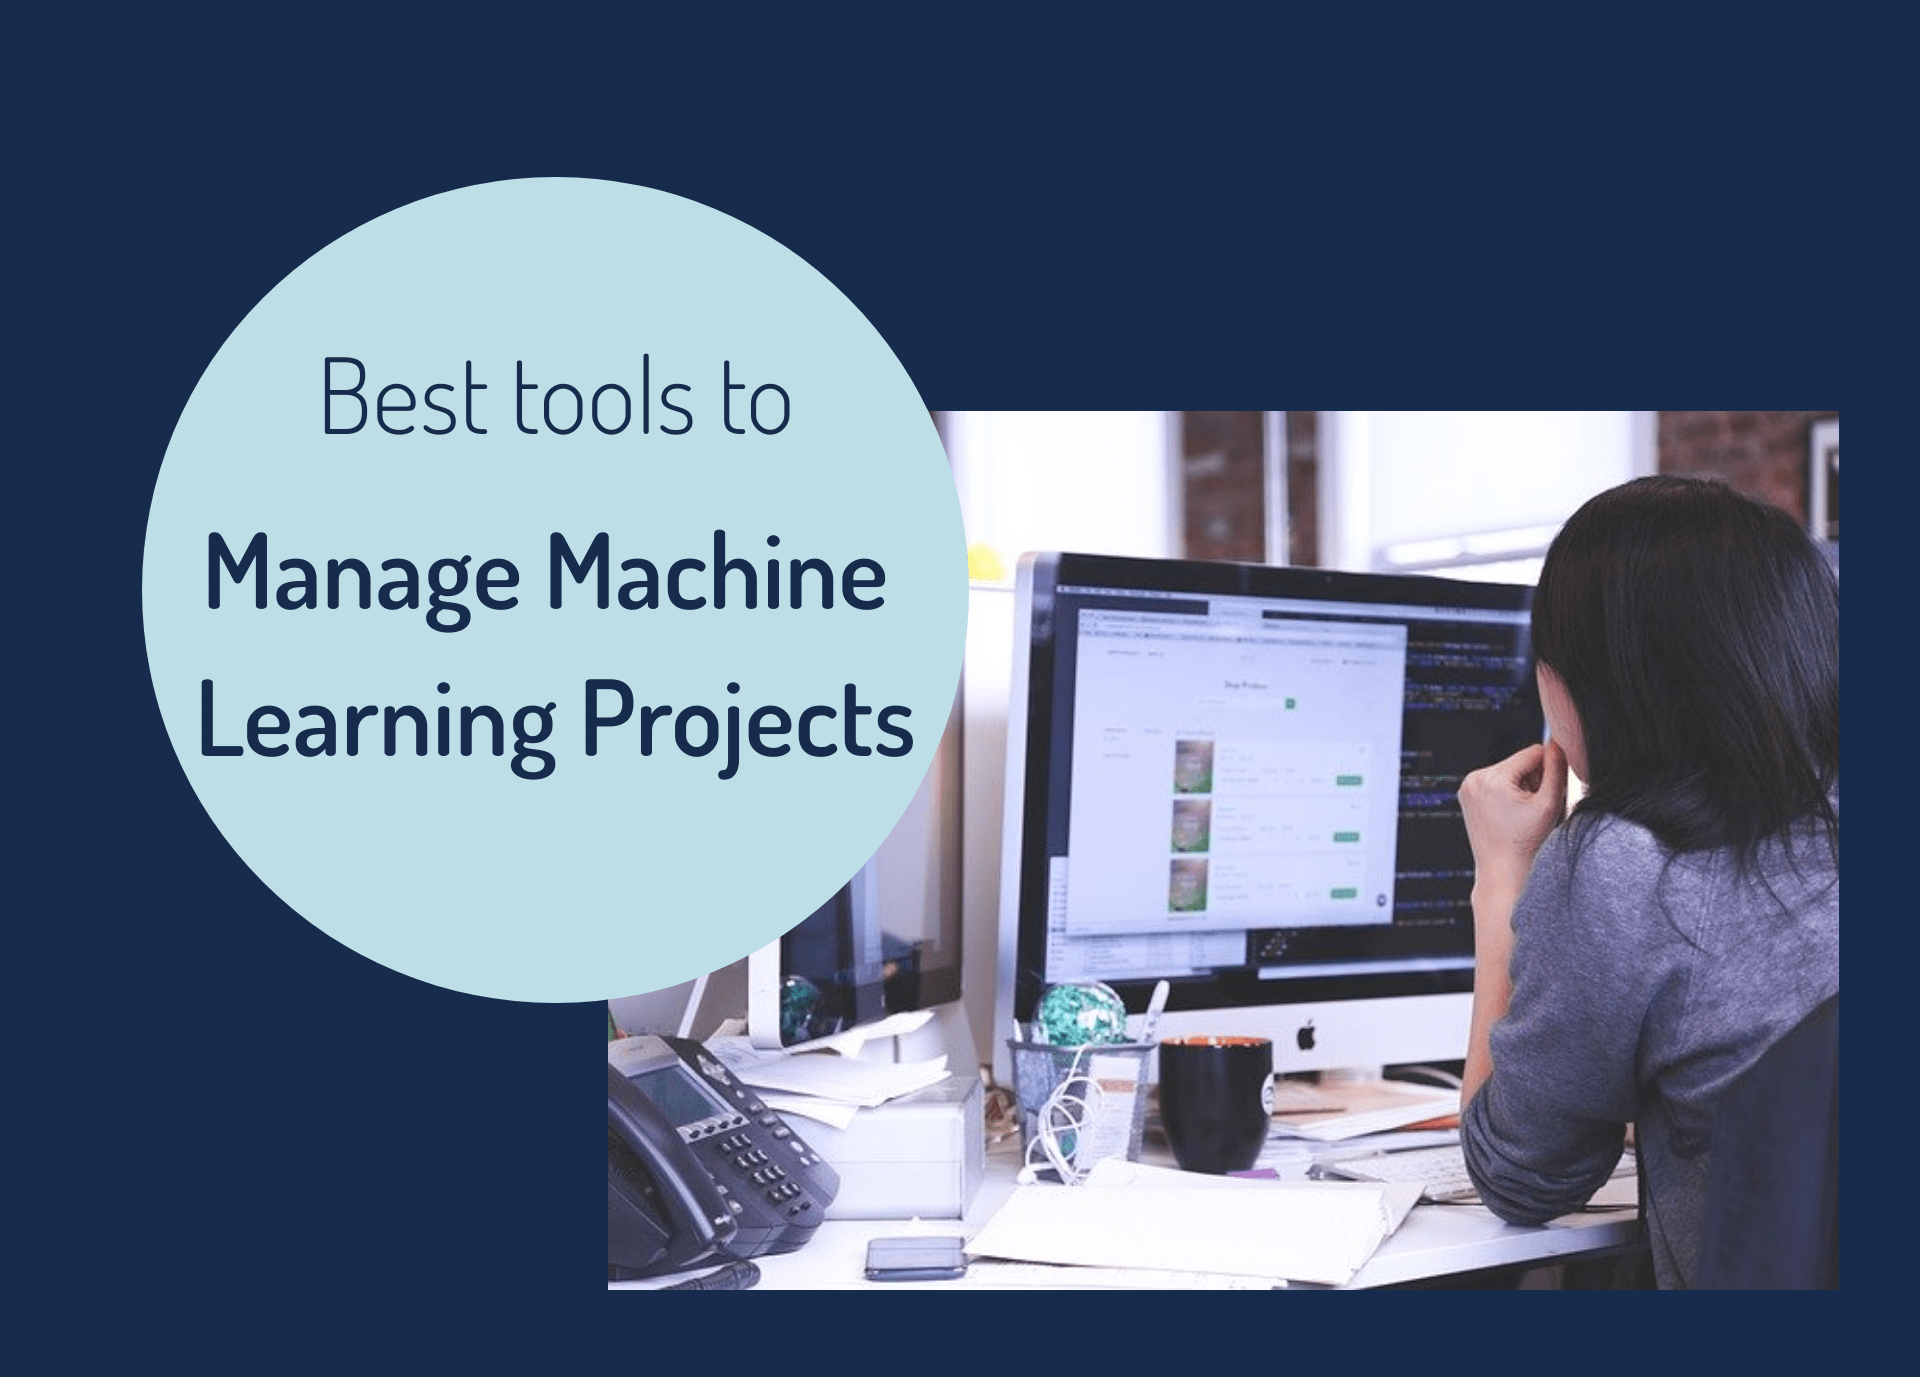 Best Tools to Manage Machine Learning Projects - RapidAPI